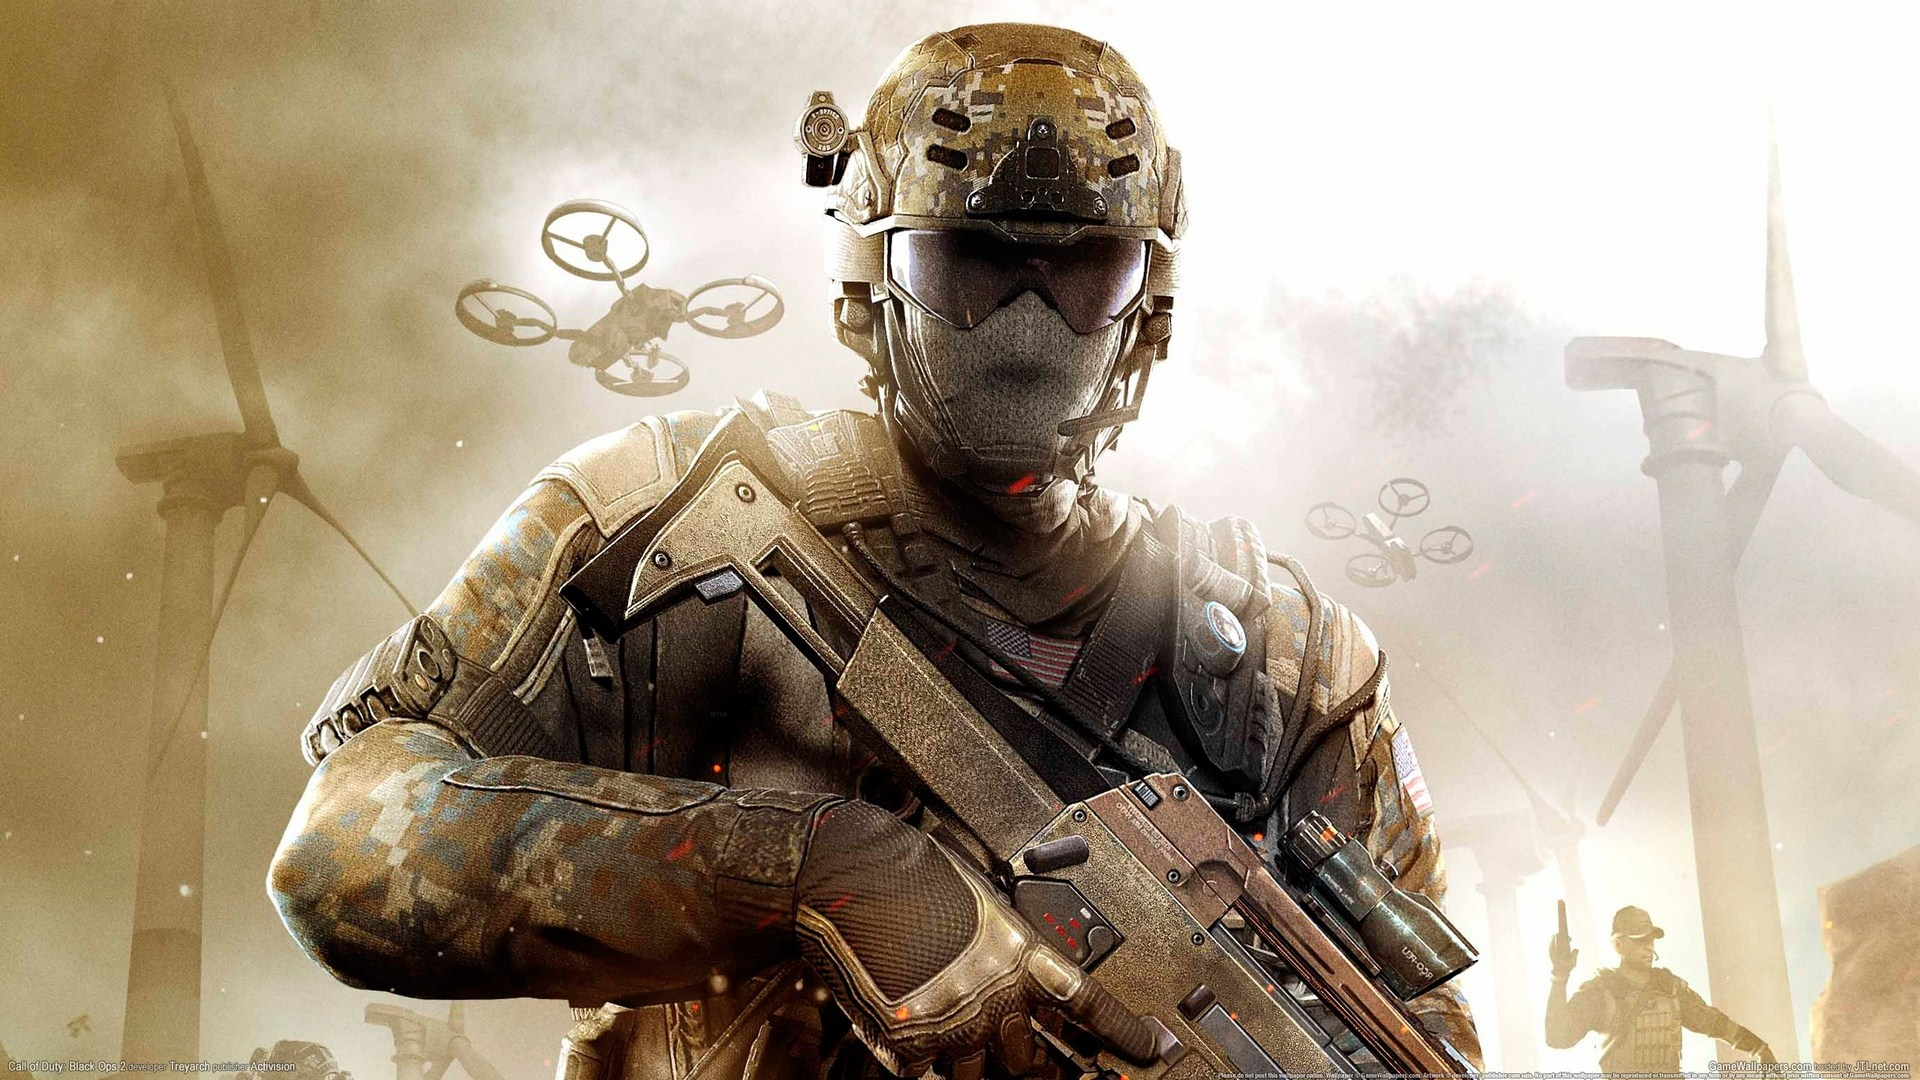 Wallpaper Hot Game Call Of Duty Black Ops 2 1920x1080 Full Hd 2k